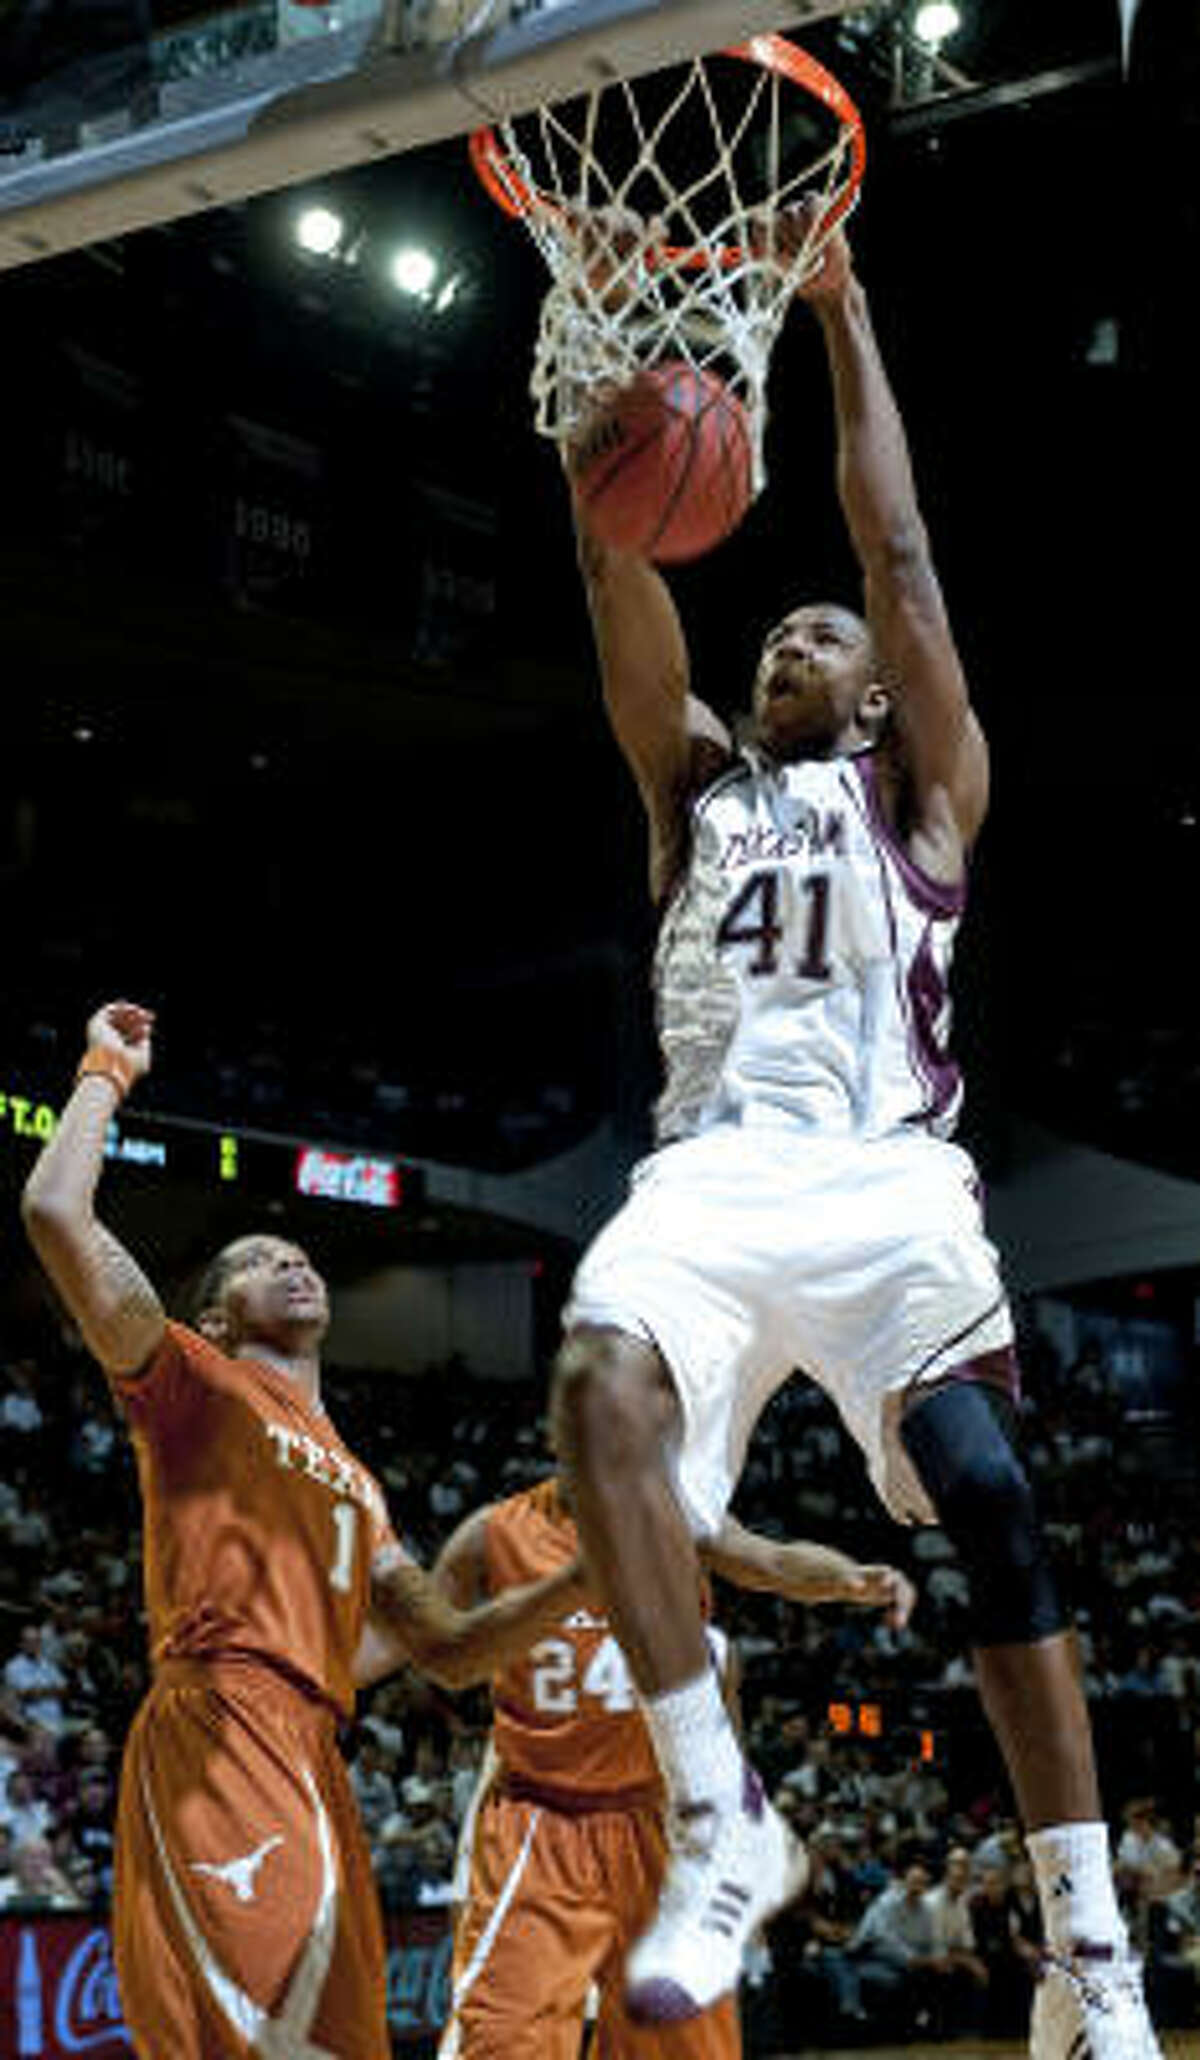 Texas A&M's Chinemelu Elonu dunks over Texas' Gary Johnson during the first half.